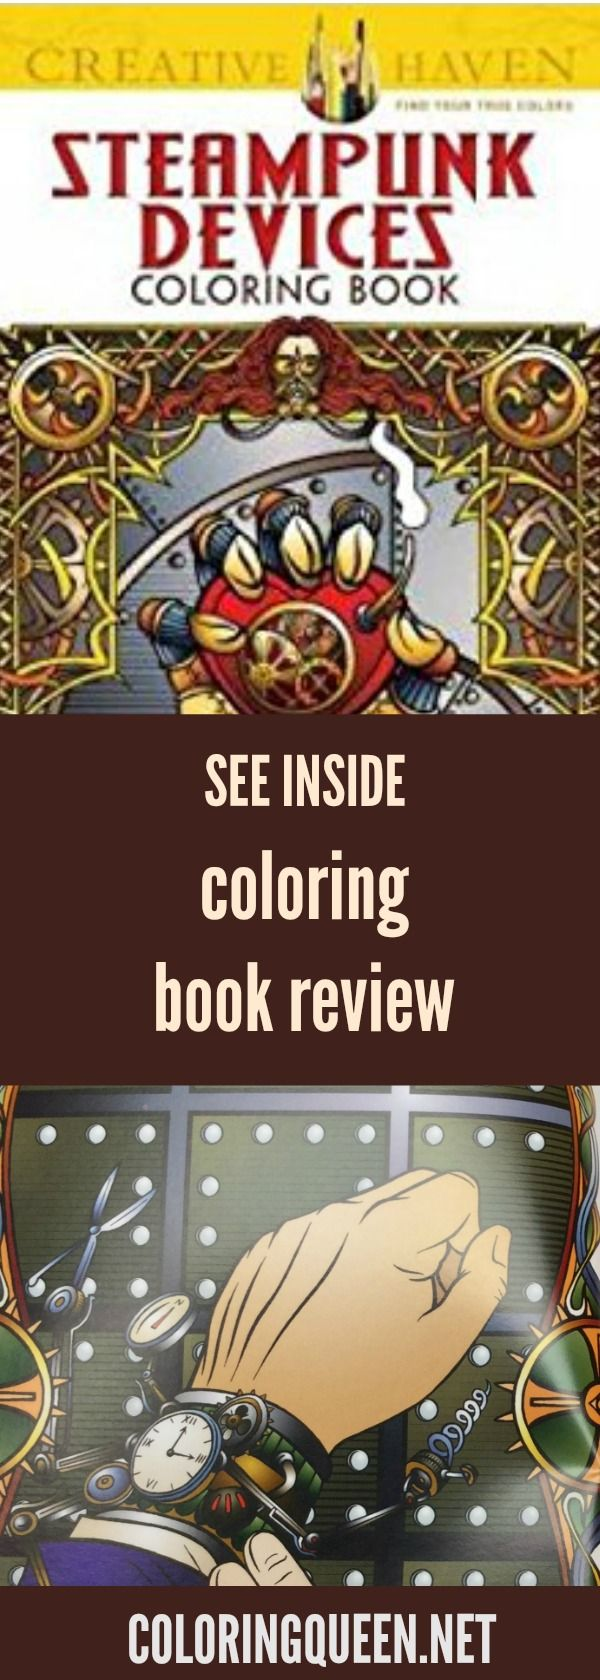 See Steampunk Devices Coloring Book Review Before You Buy This Creative Haven For Adults